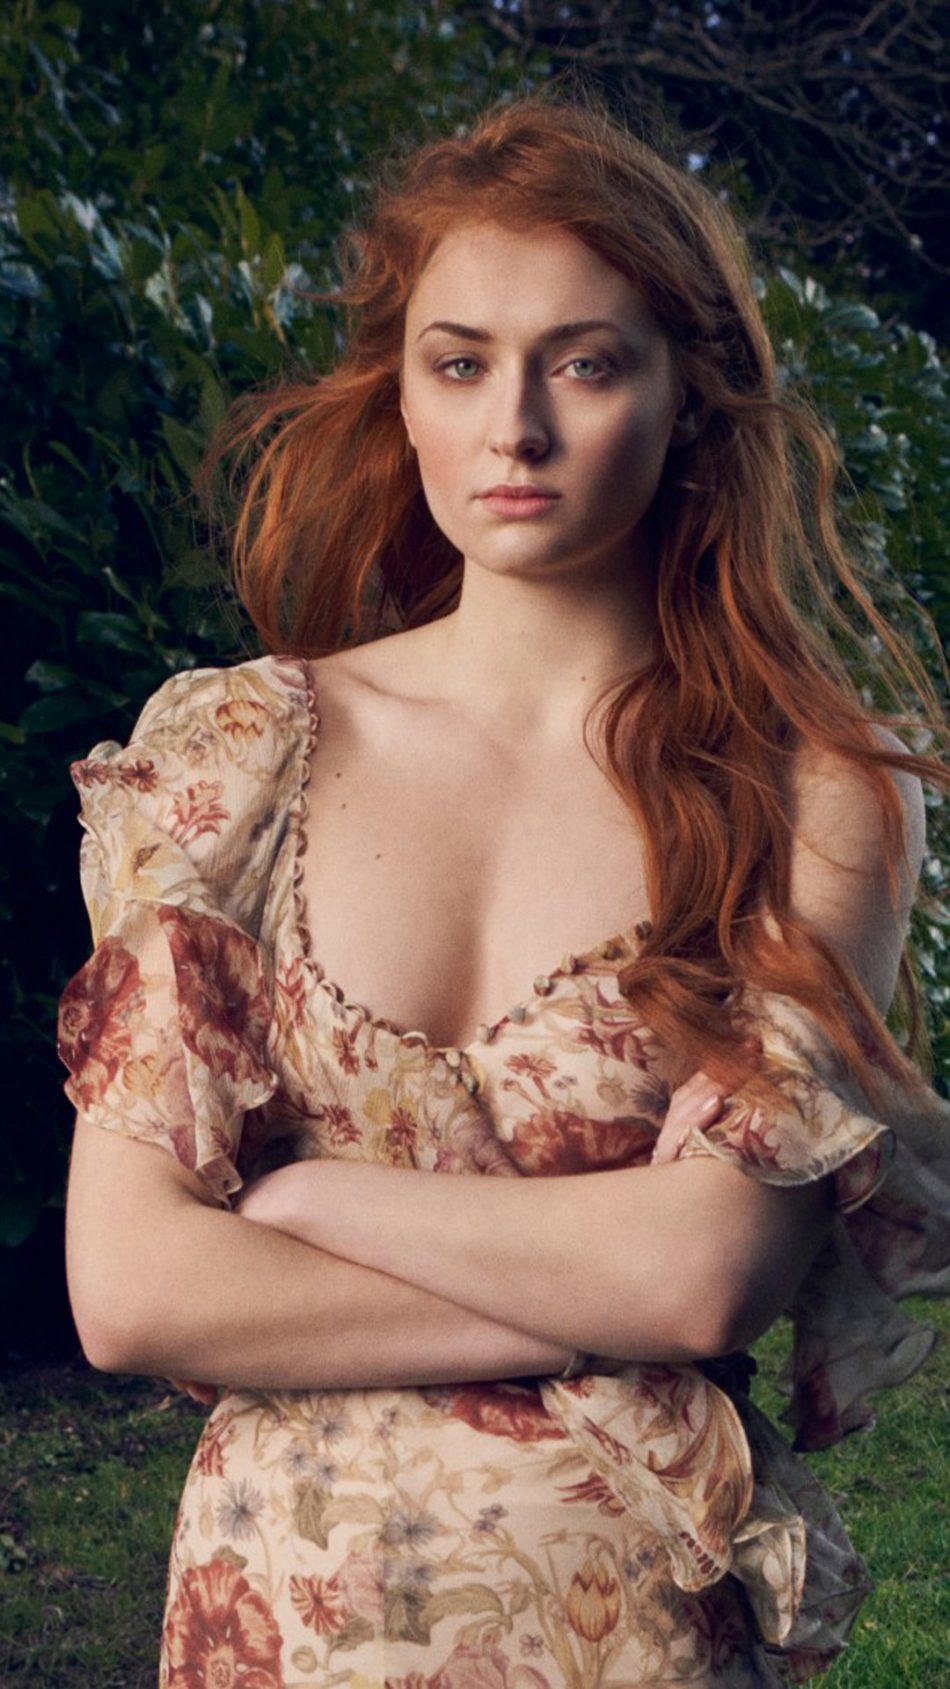 Dev Hd Wallpaper Download Sophie Turner Hot Photoshoot 2018 Free Pure 4k